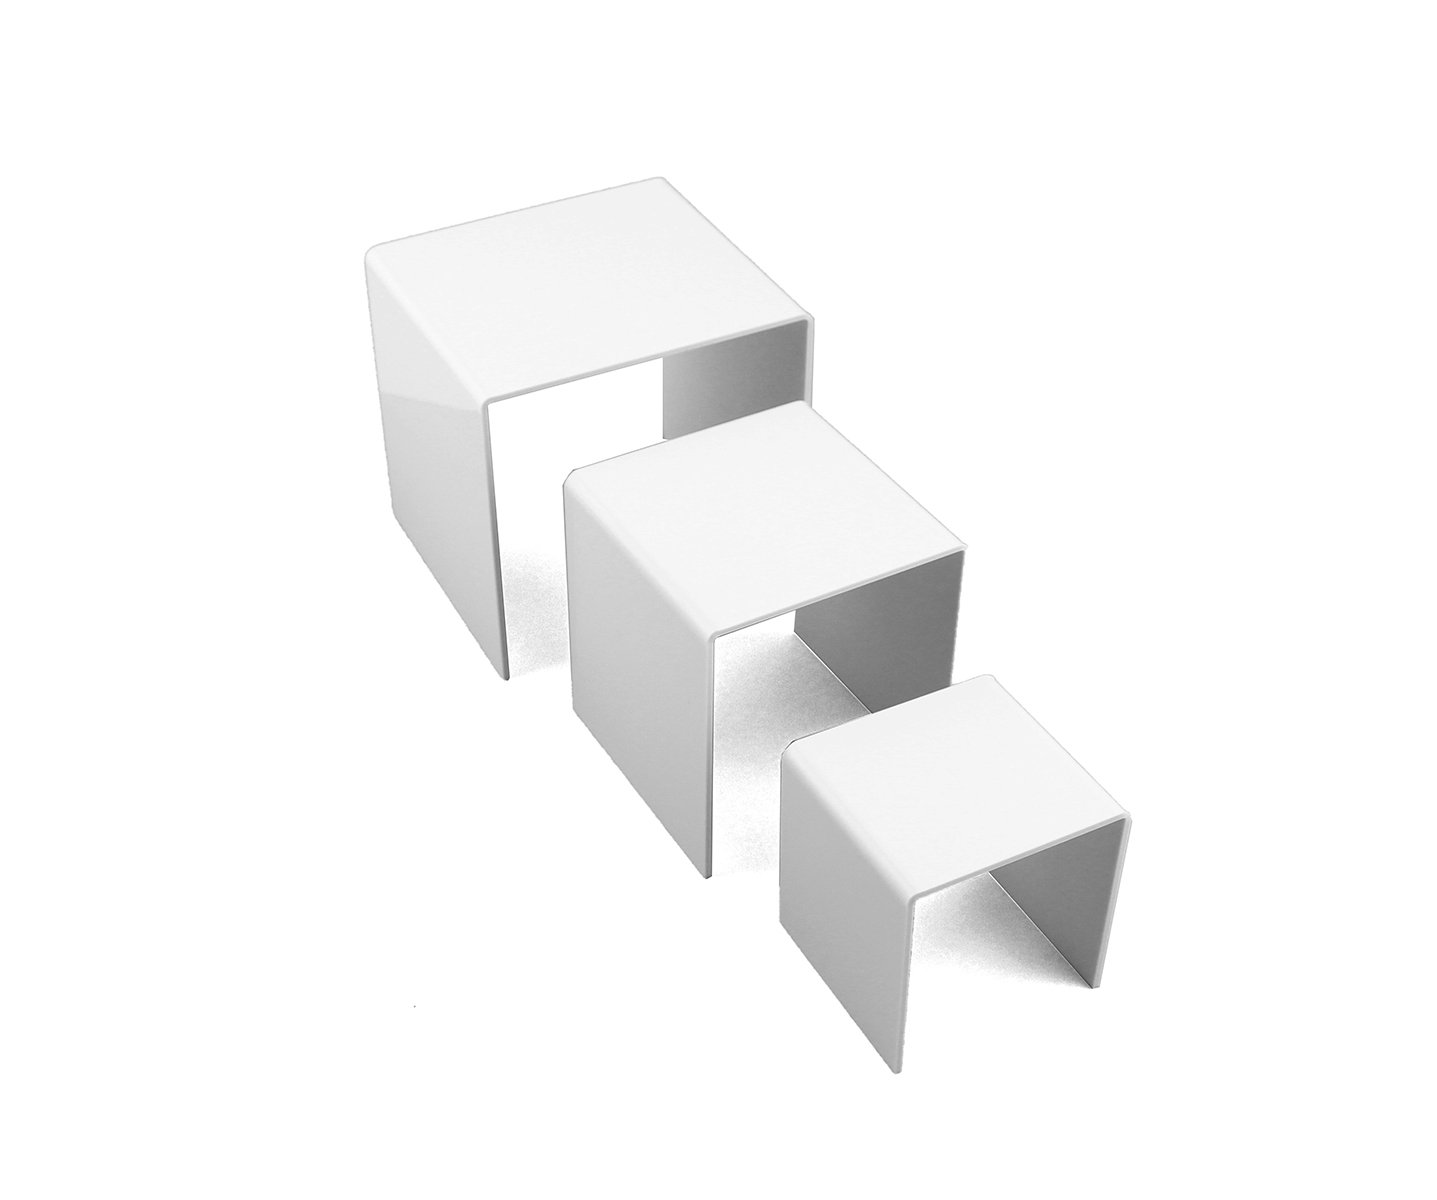 Tytroy Set of 3 White Acrylic Showcase Display Risers Nesting Display Stands